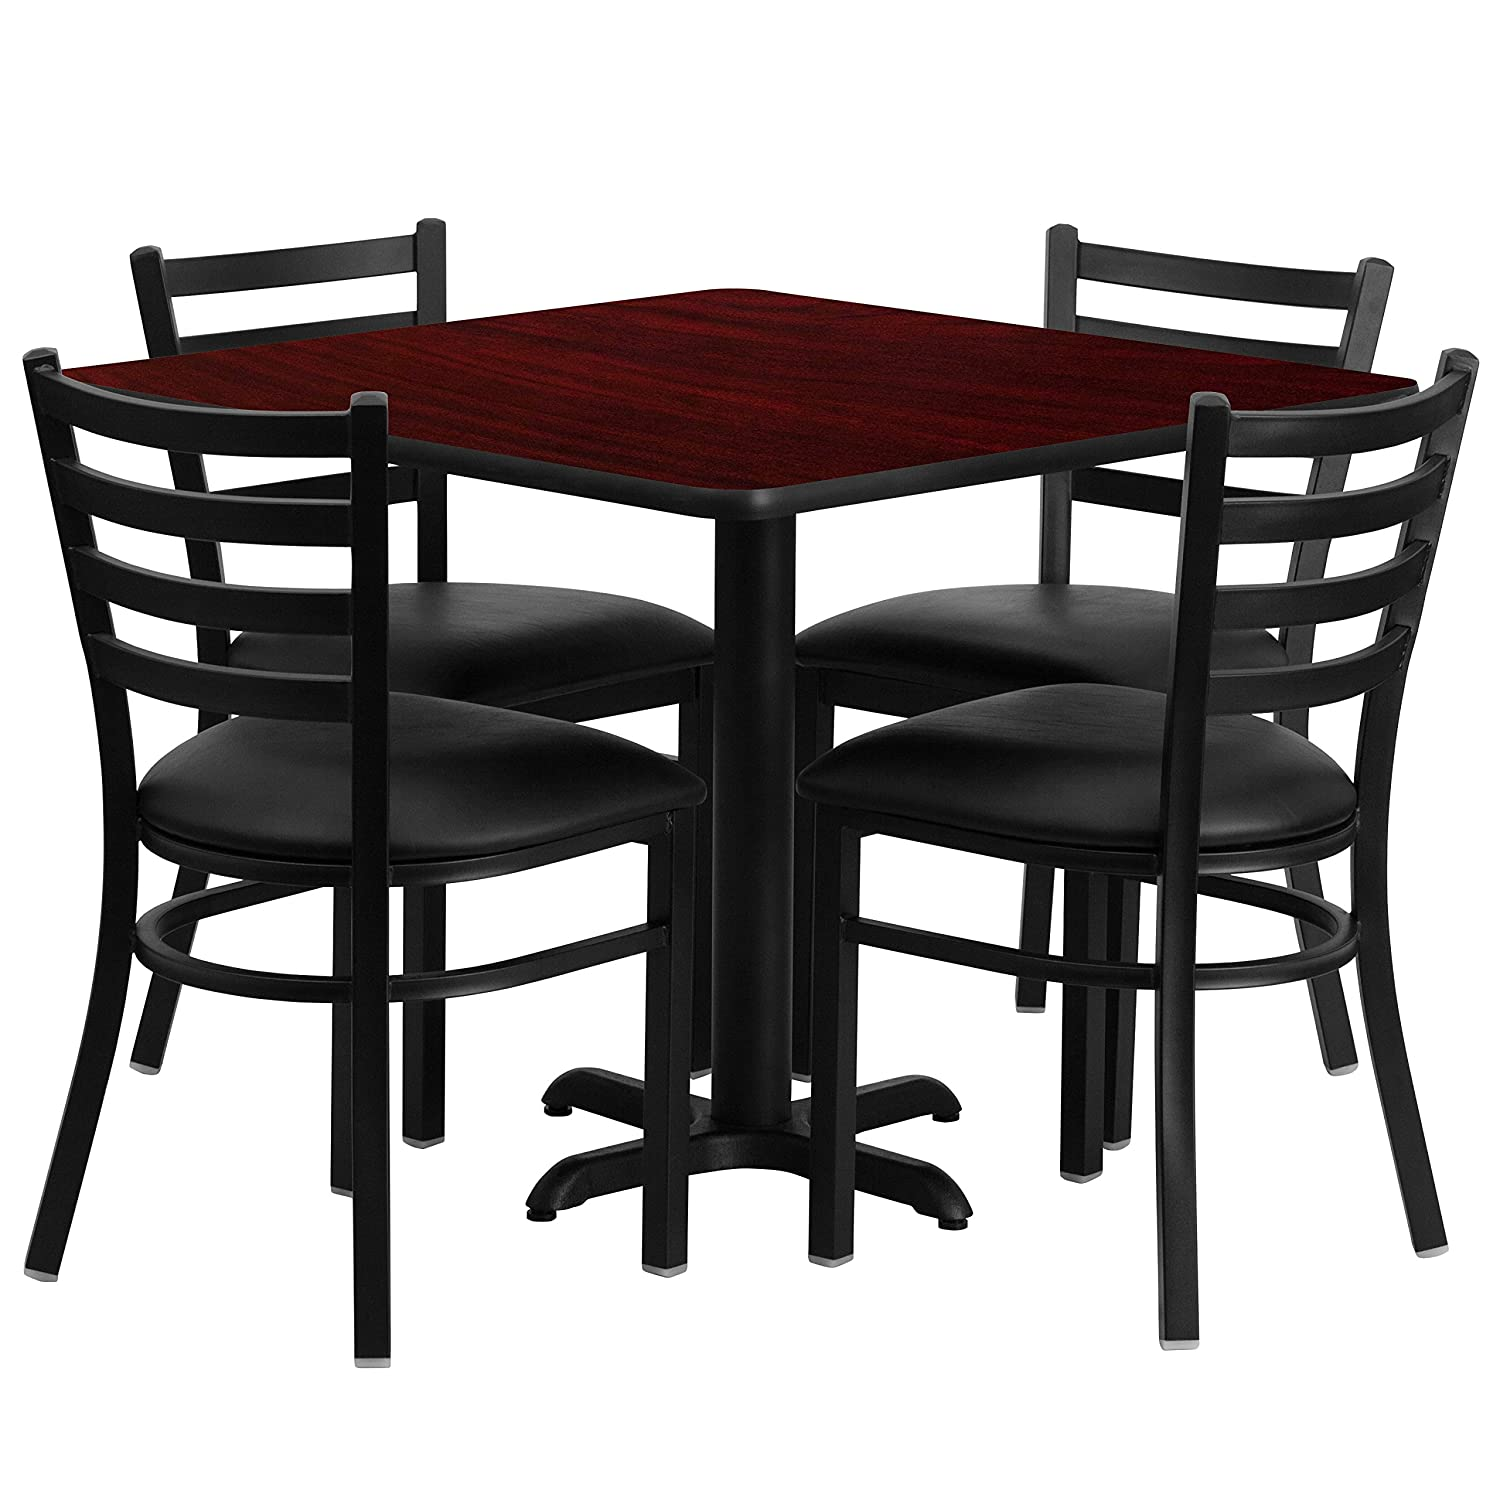 Amazoncom Commercial Grade Square Restaurant Table And Metal - Restaurant table top ideas